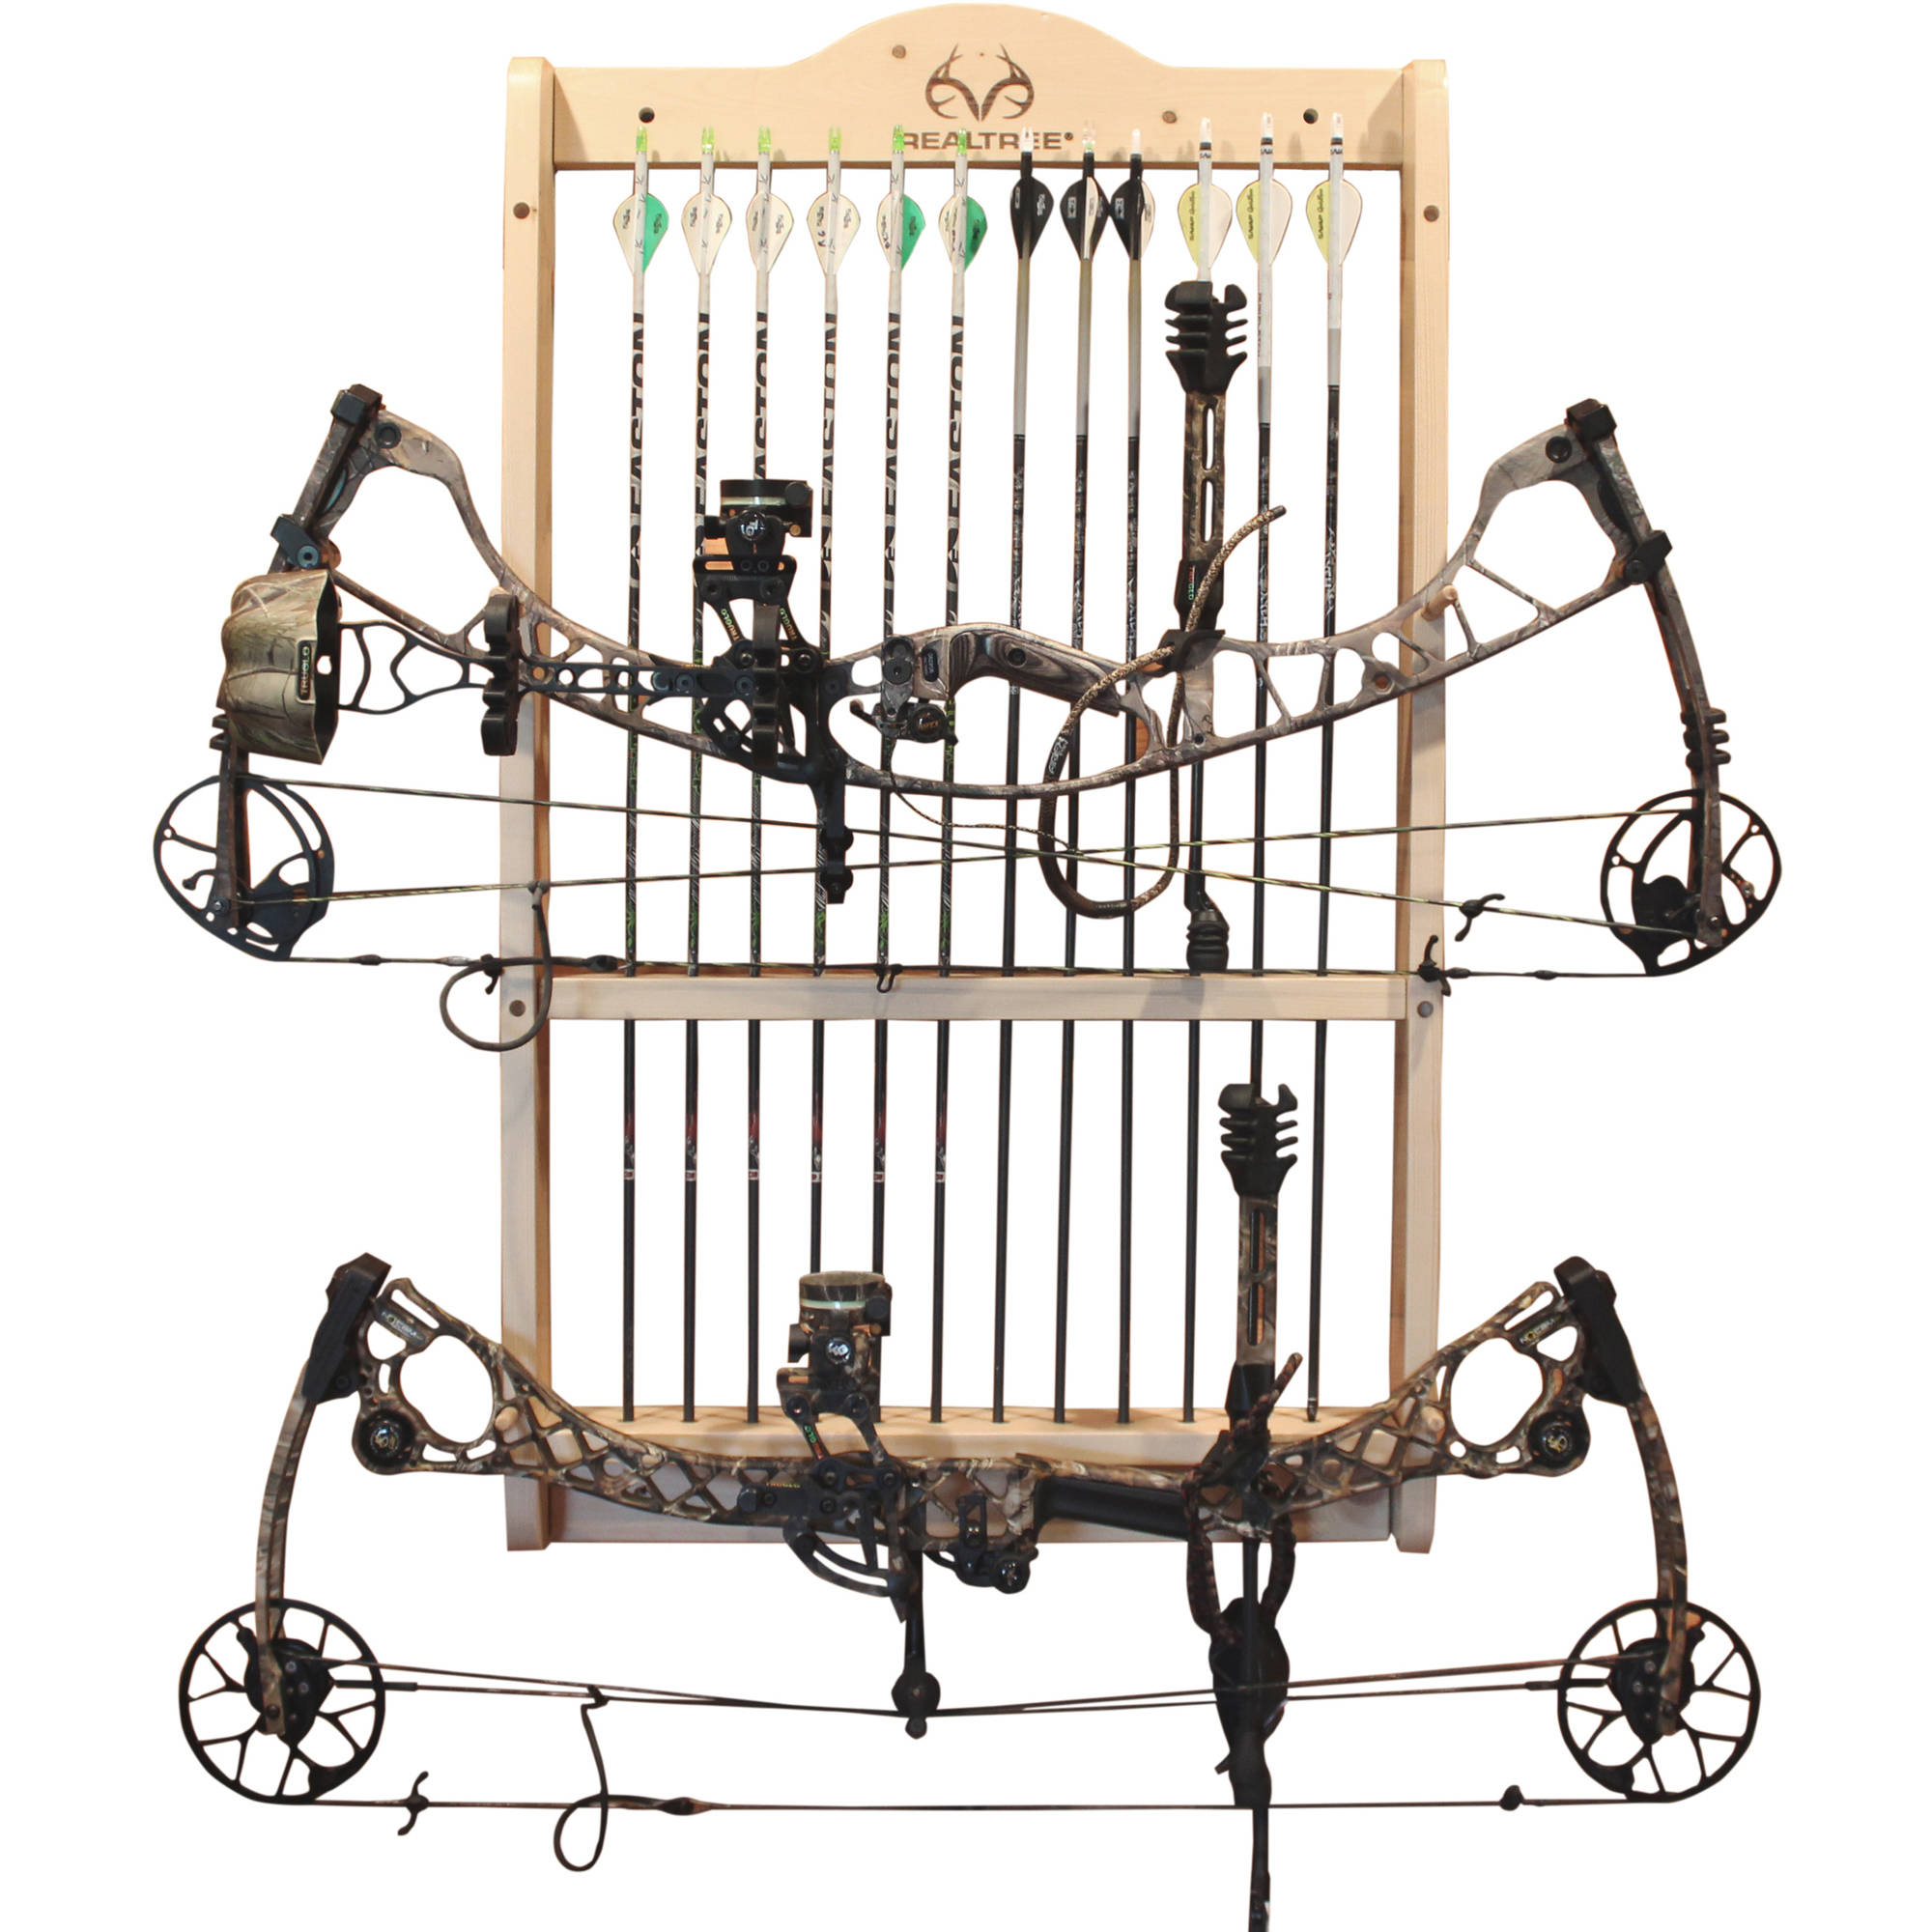 Rush Creek Creations REALTREE 2 Compound Bow 12 Arrow Wall Storage Rack